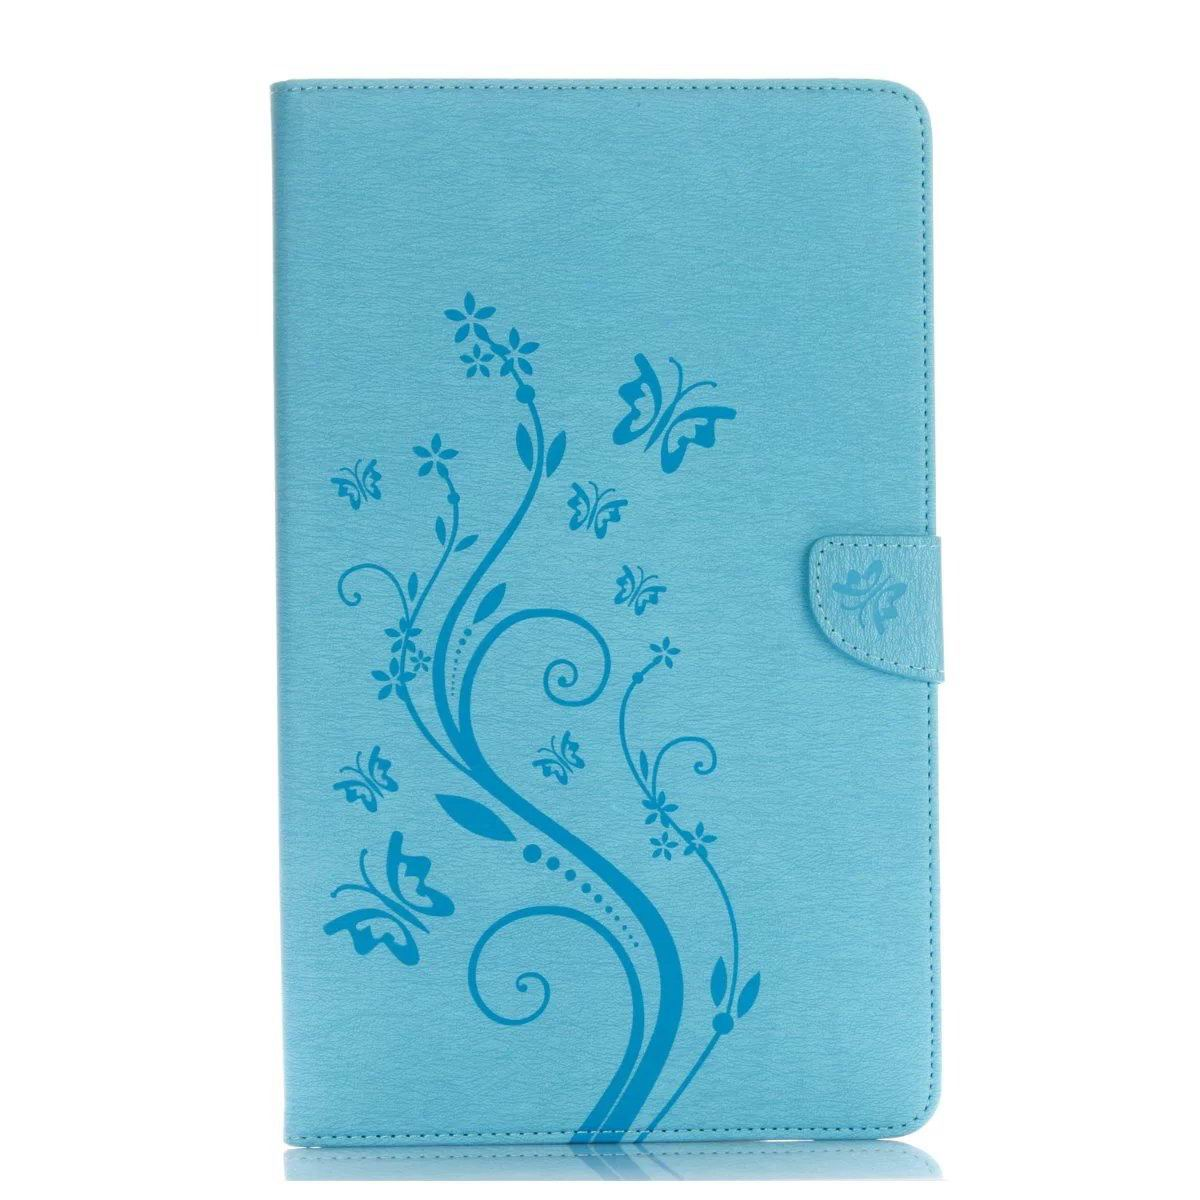 galaxy tab a 10 1 s pen 2016 business multicolor case with monochrome flowers 2 stand and credit card pockets Sky blue: